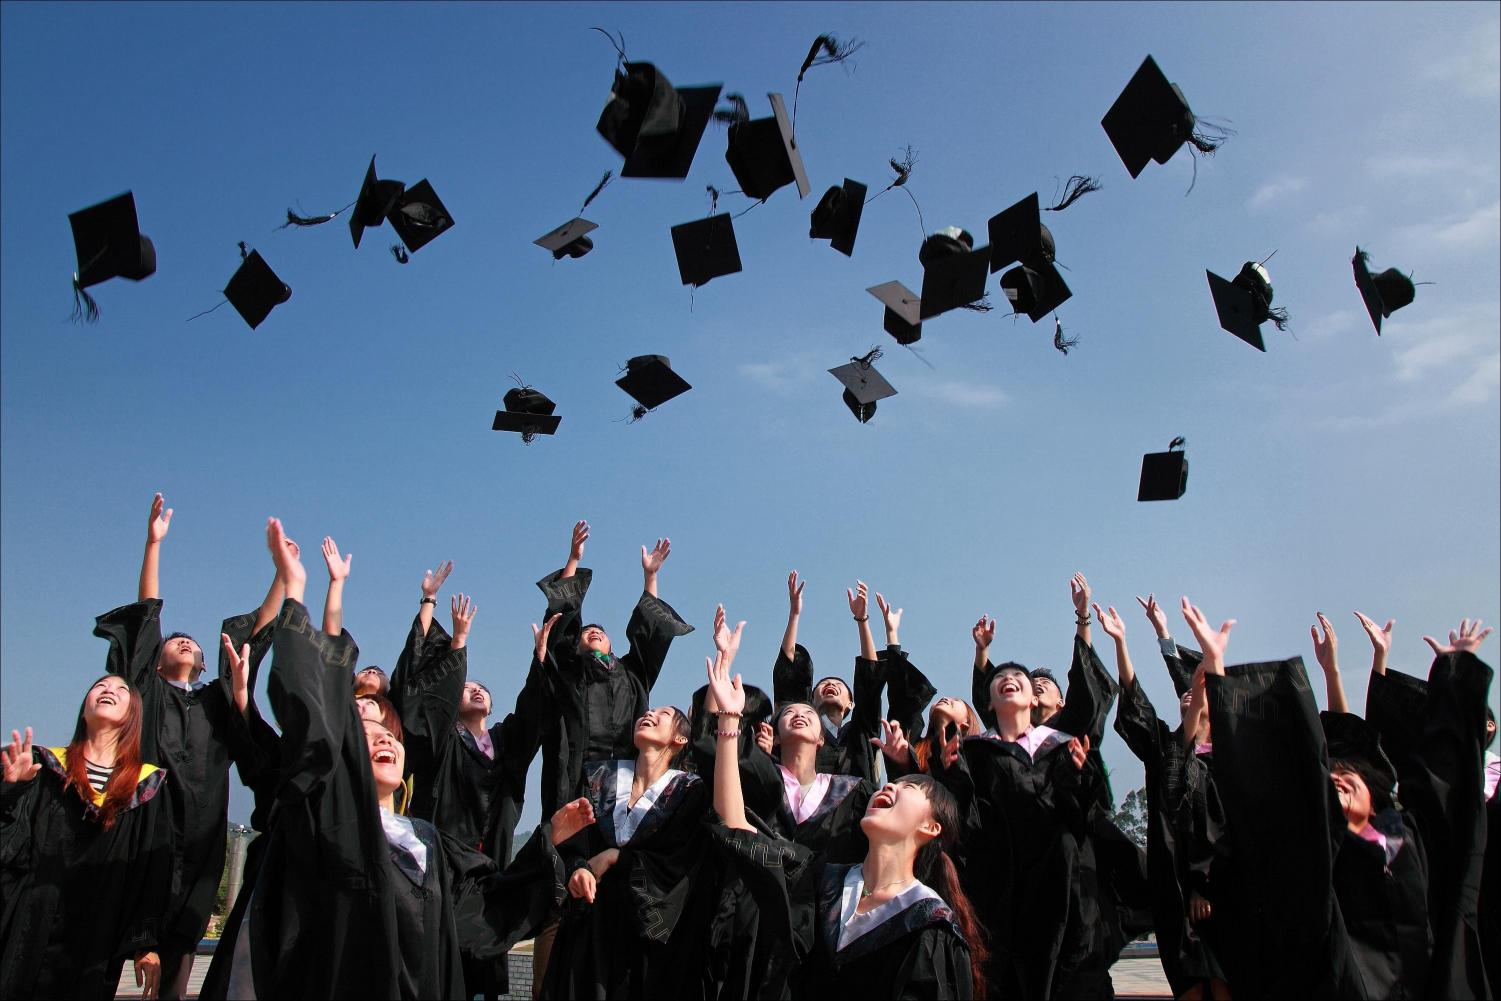 Seniors are celebrating the fact that they just graduated by throwing their caps in the air.